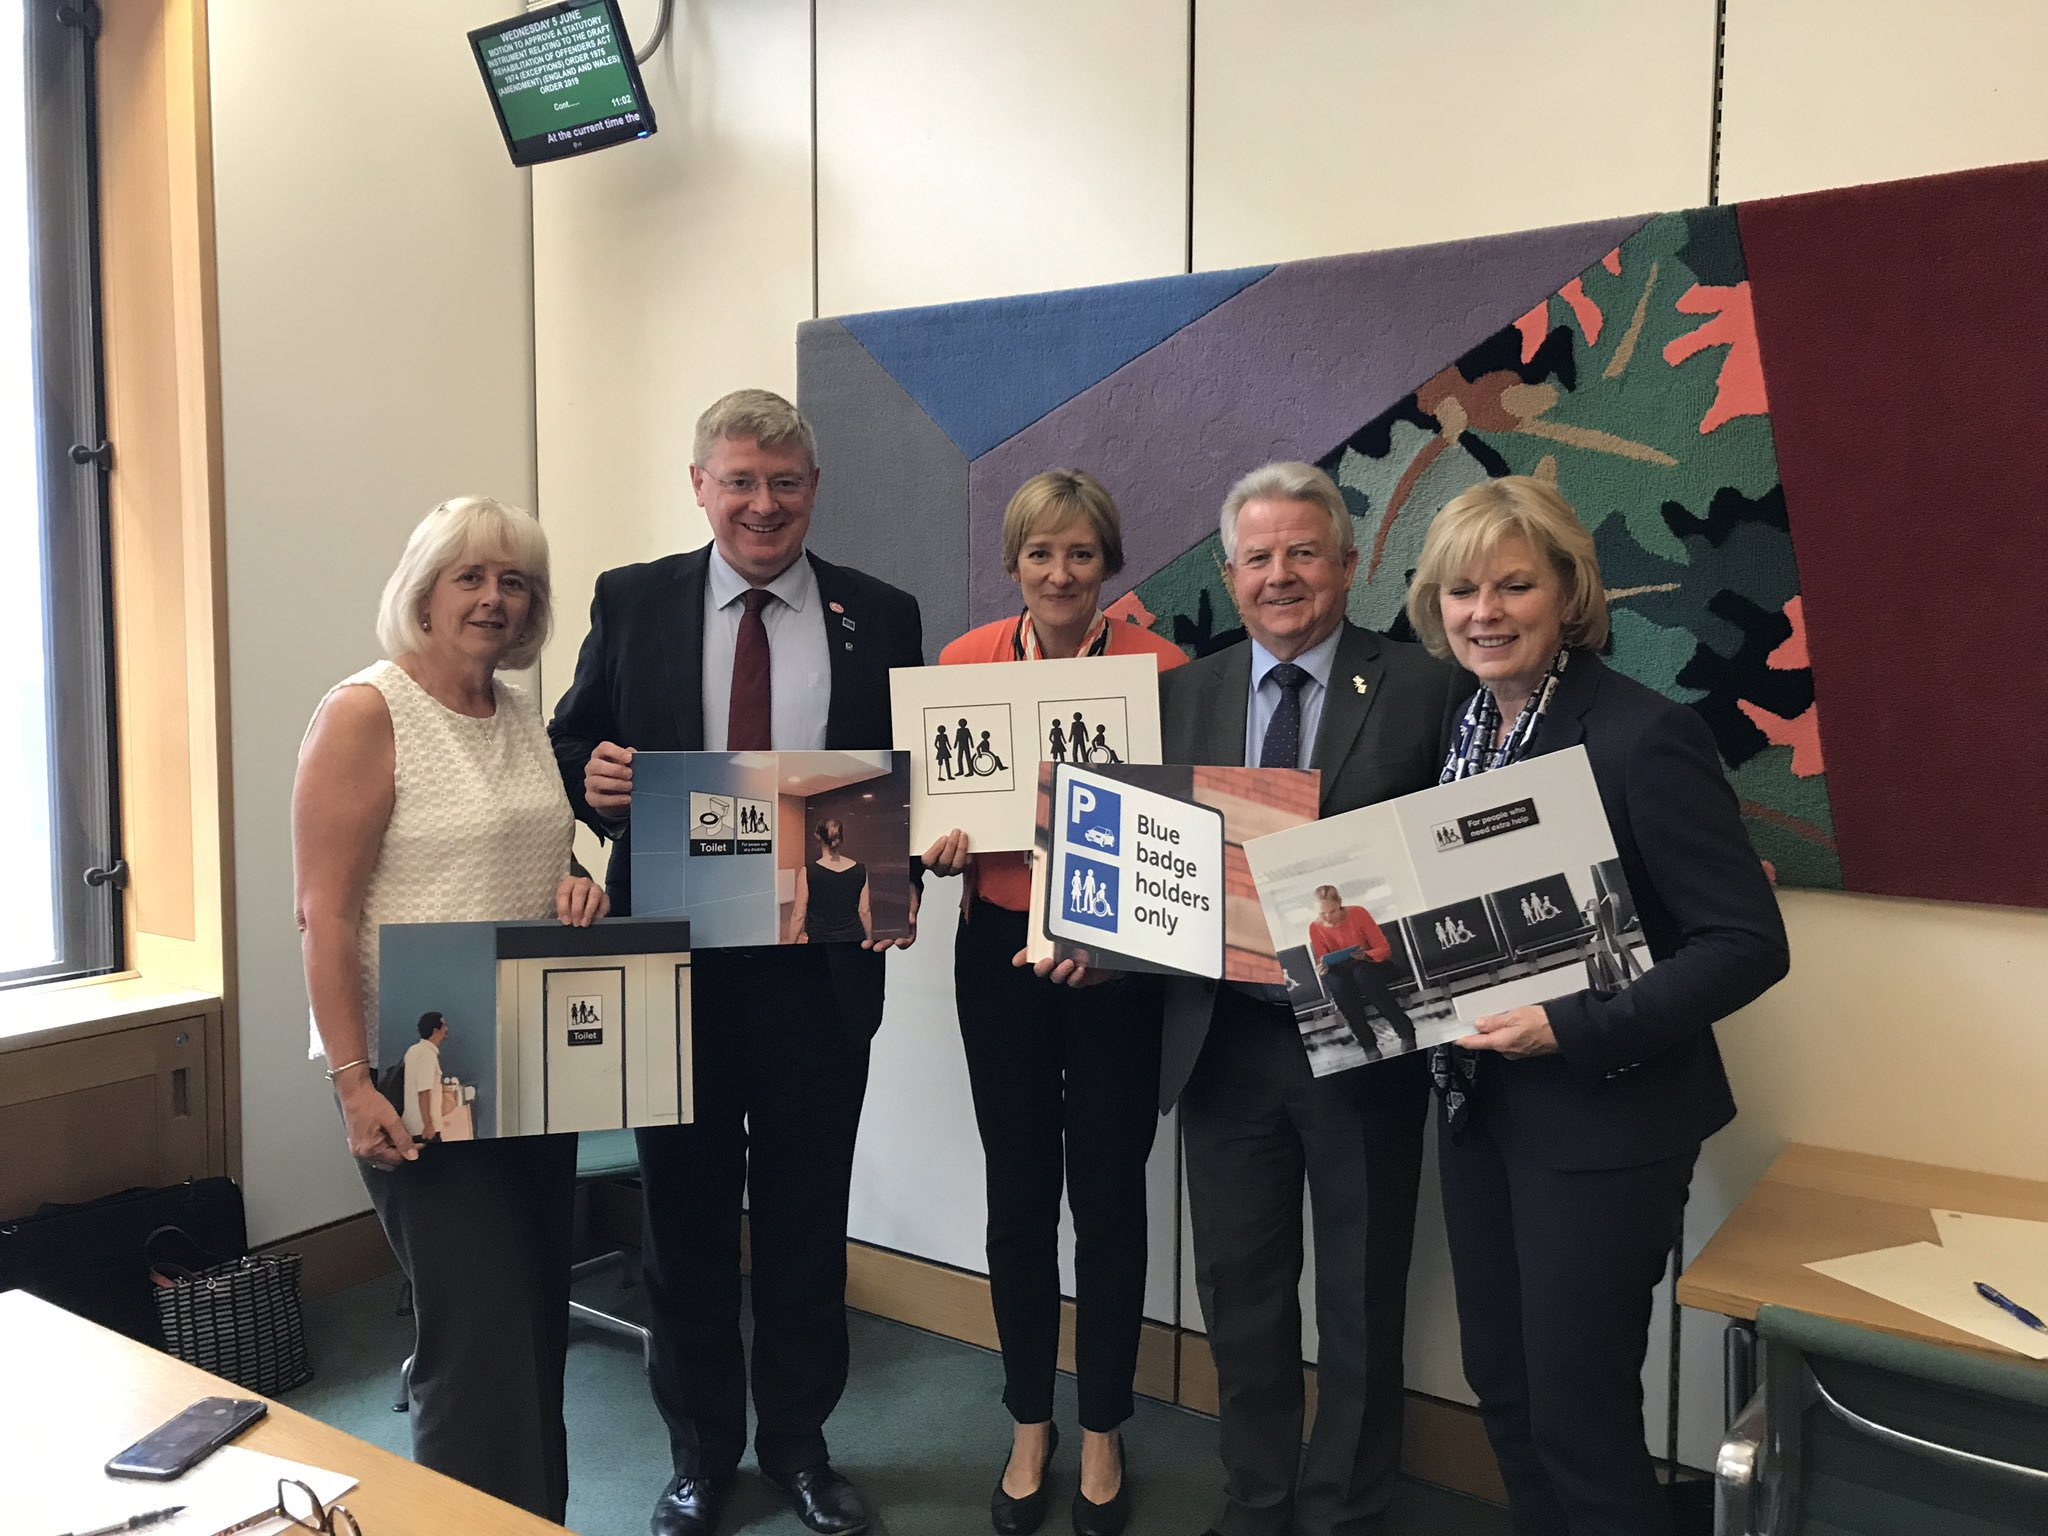 Mps support new Any Disability symbol by StudioLR